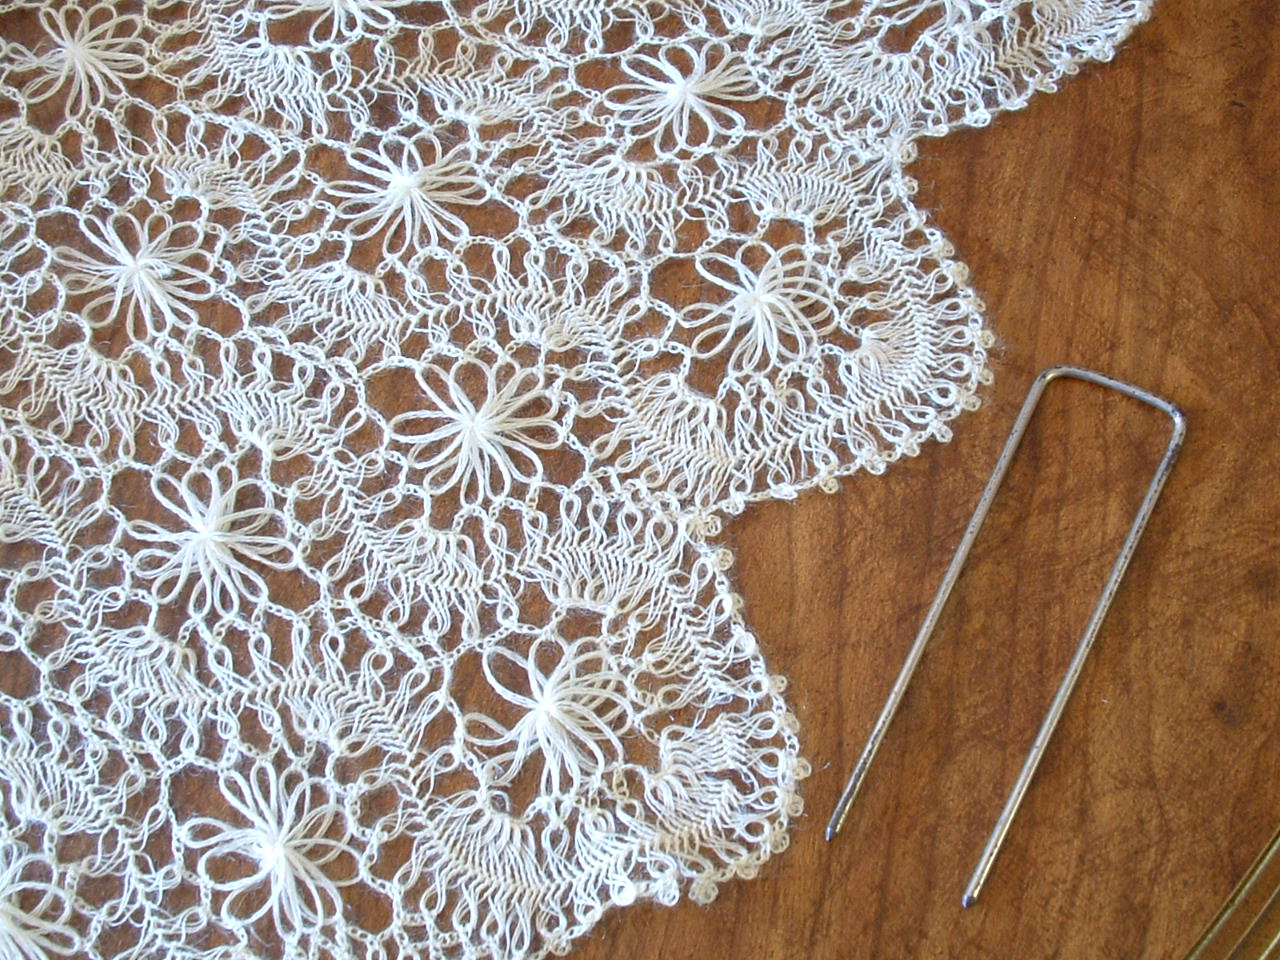 Knitting Hairpin Lace Pattern : 1000+ images about Hairpin Lace on Pinterest Free pattern, Loom and Shawl